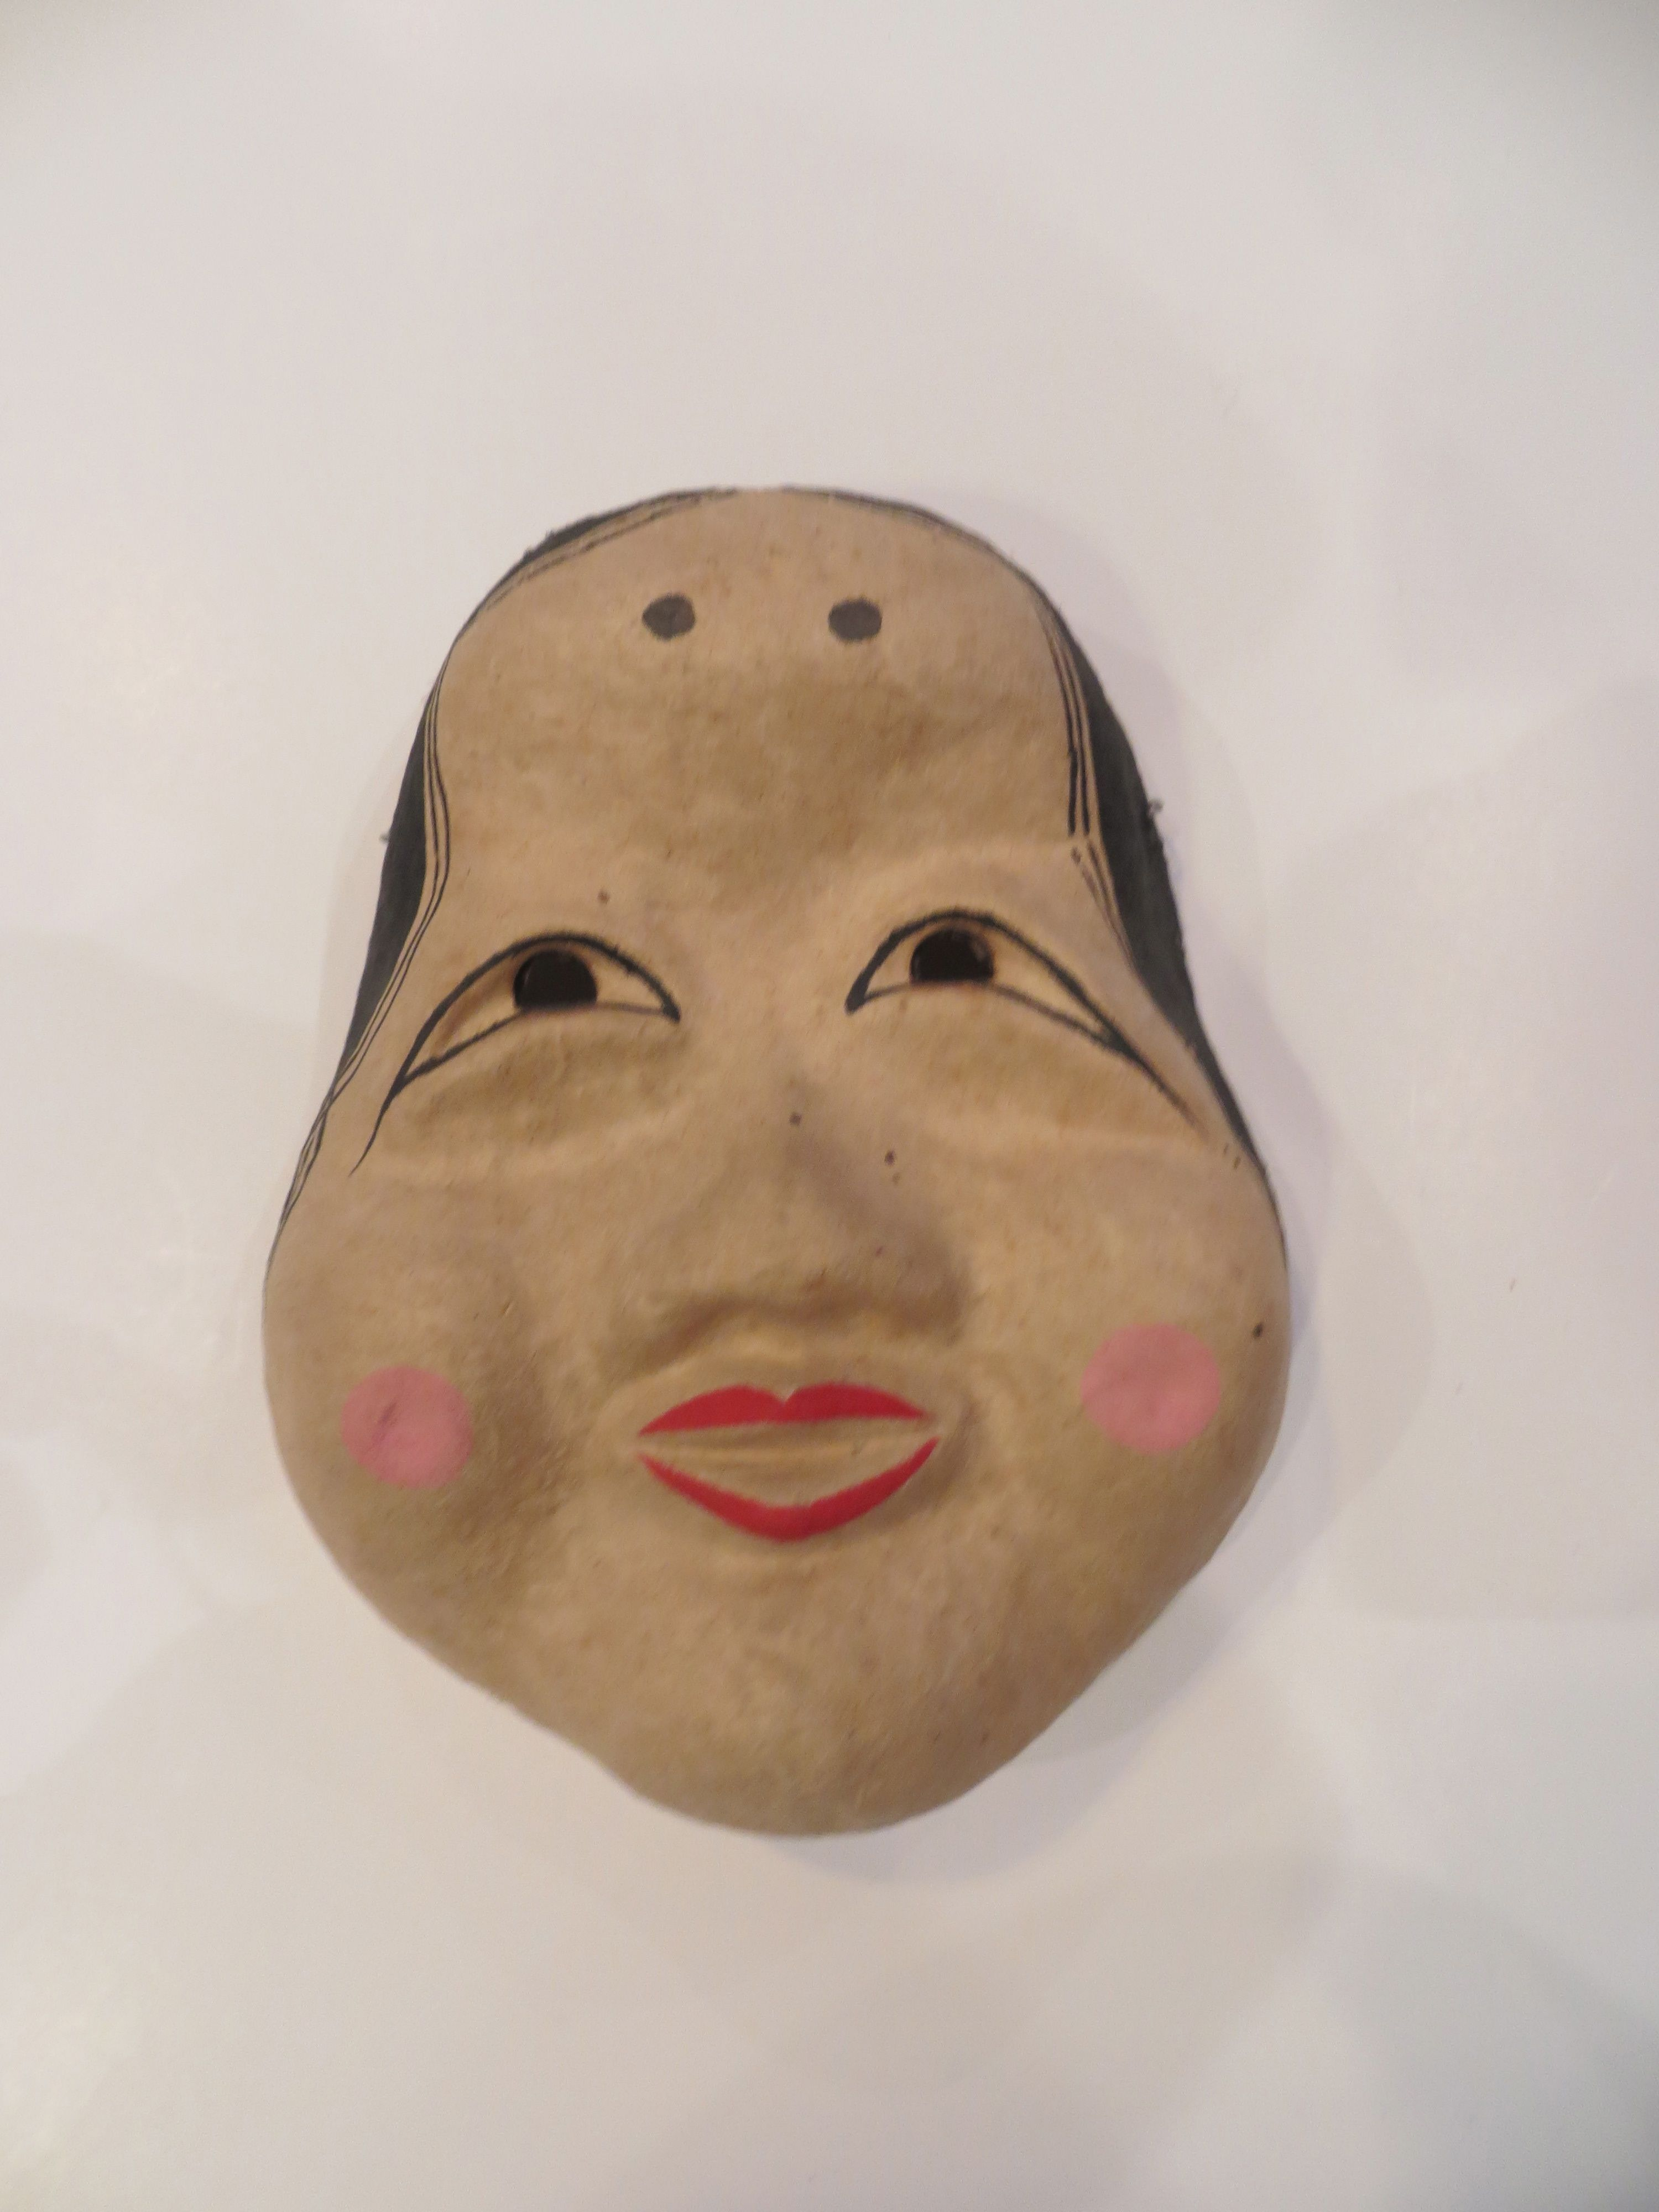 Ona Woman Noh Folk Mask Polychrome Papier Mache Collected Tokyo Japan 1989